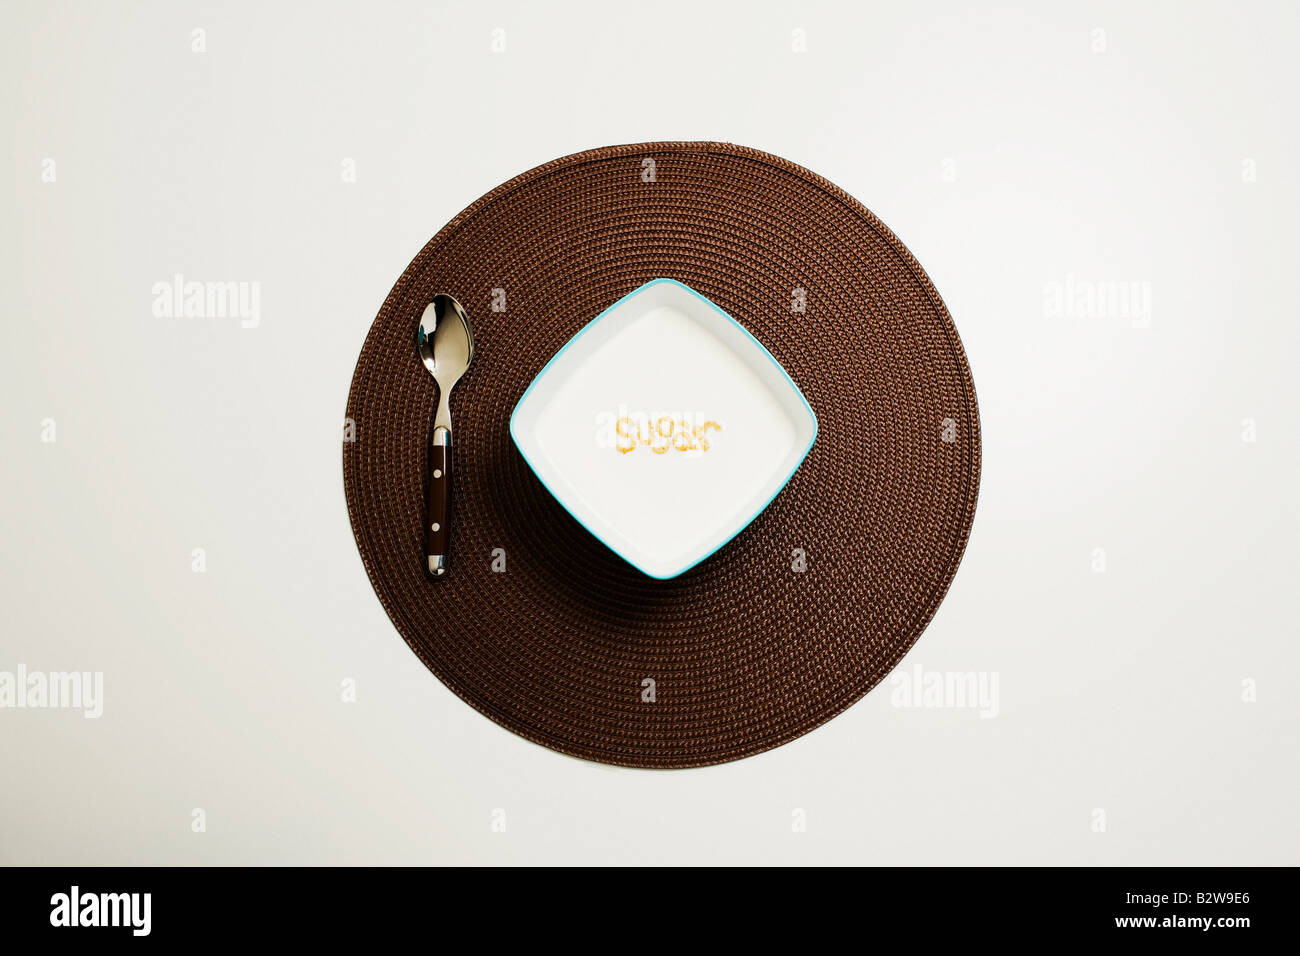 Bowl of sugar and spoon - Stock Image